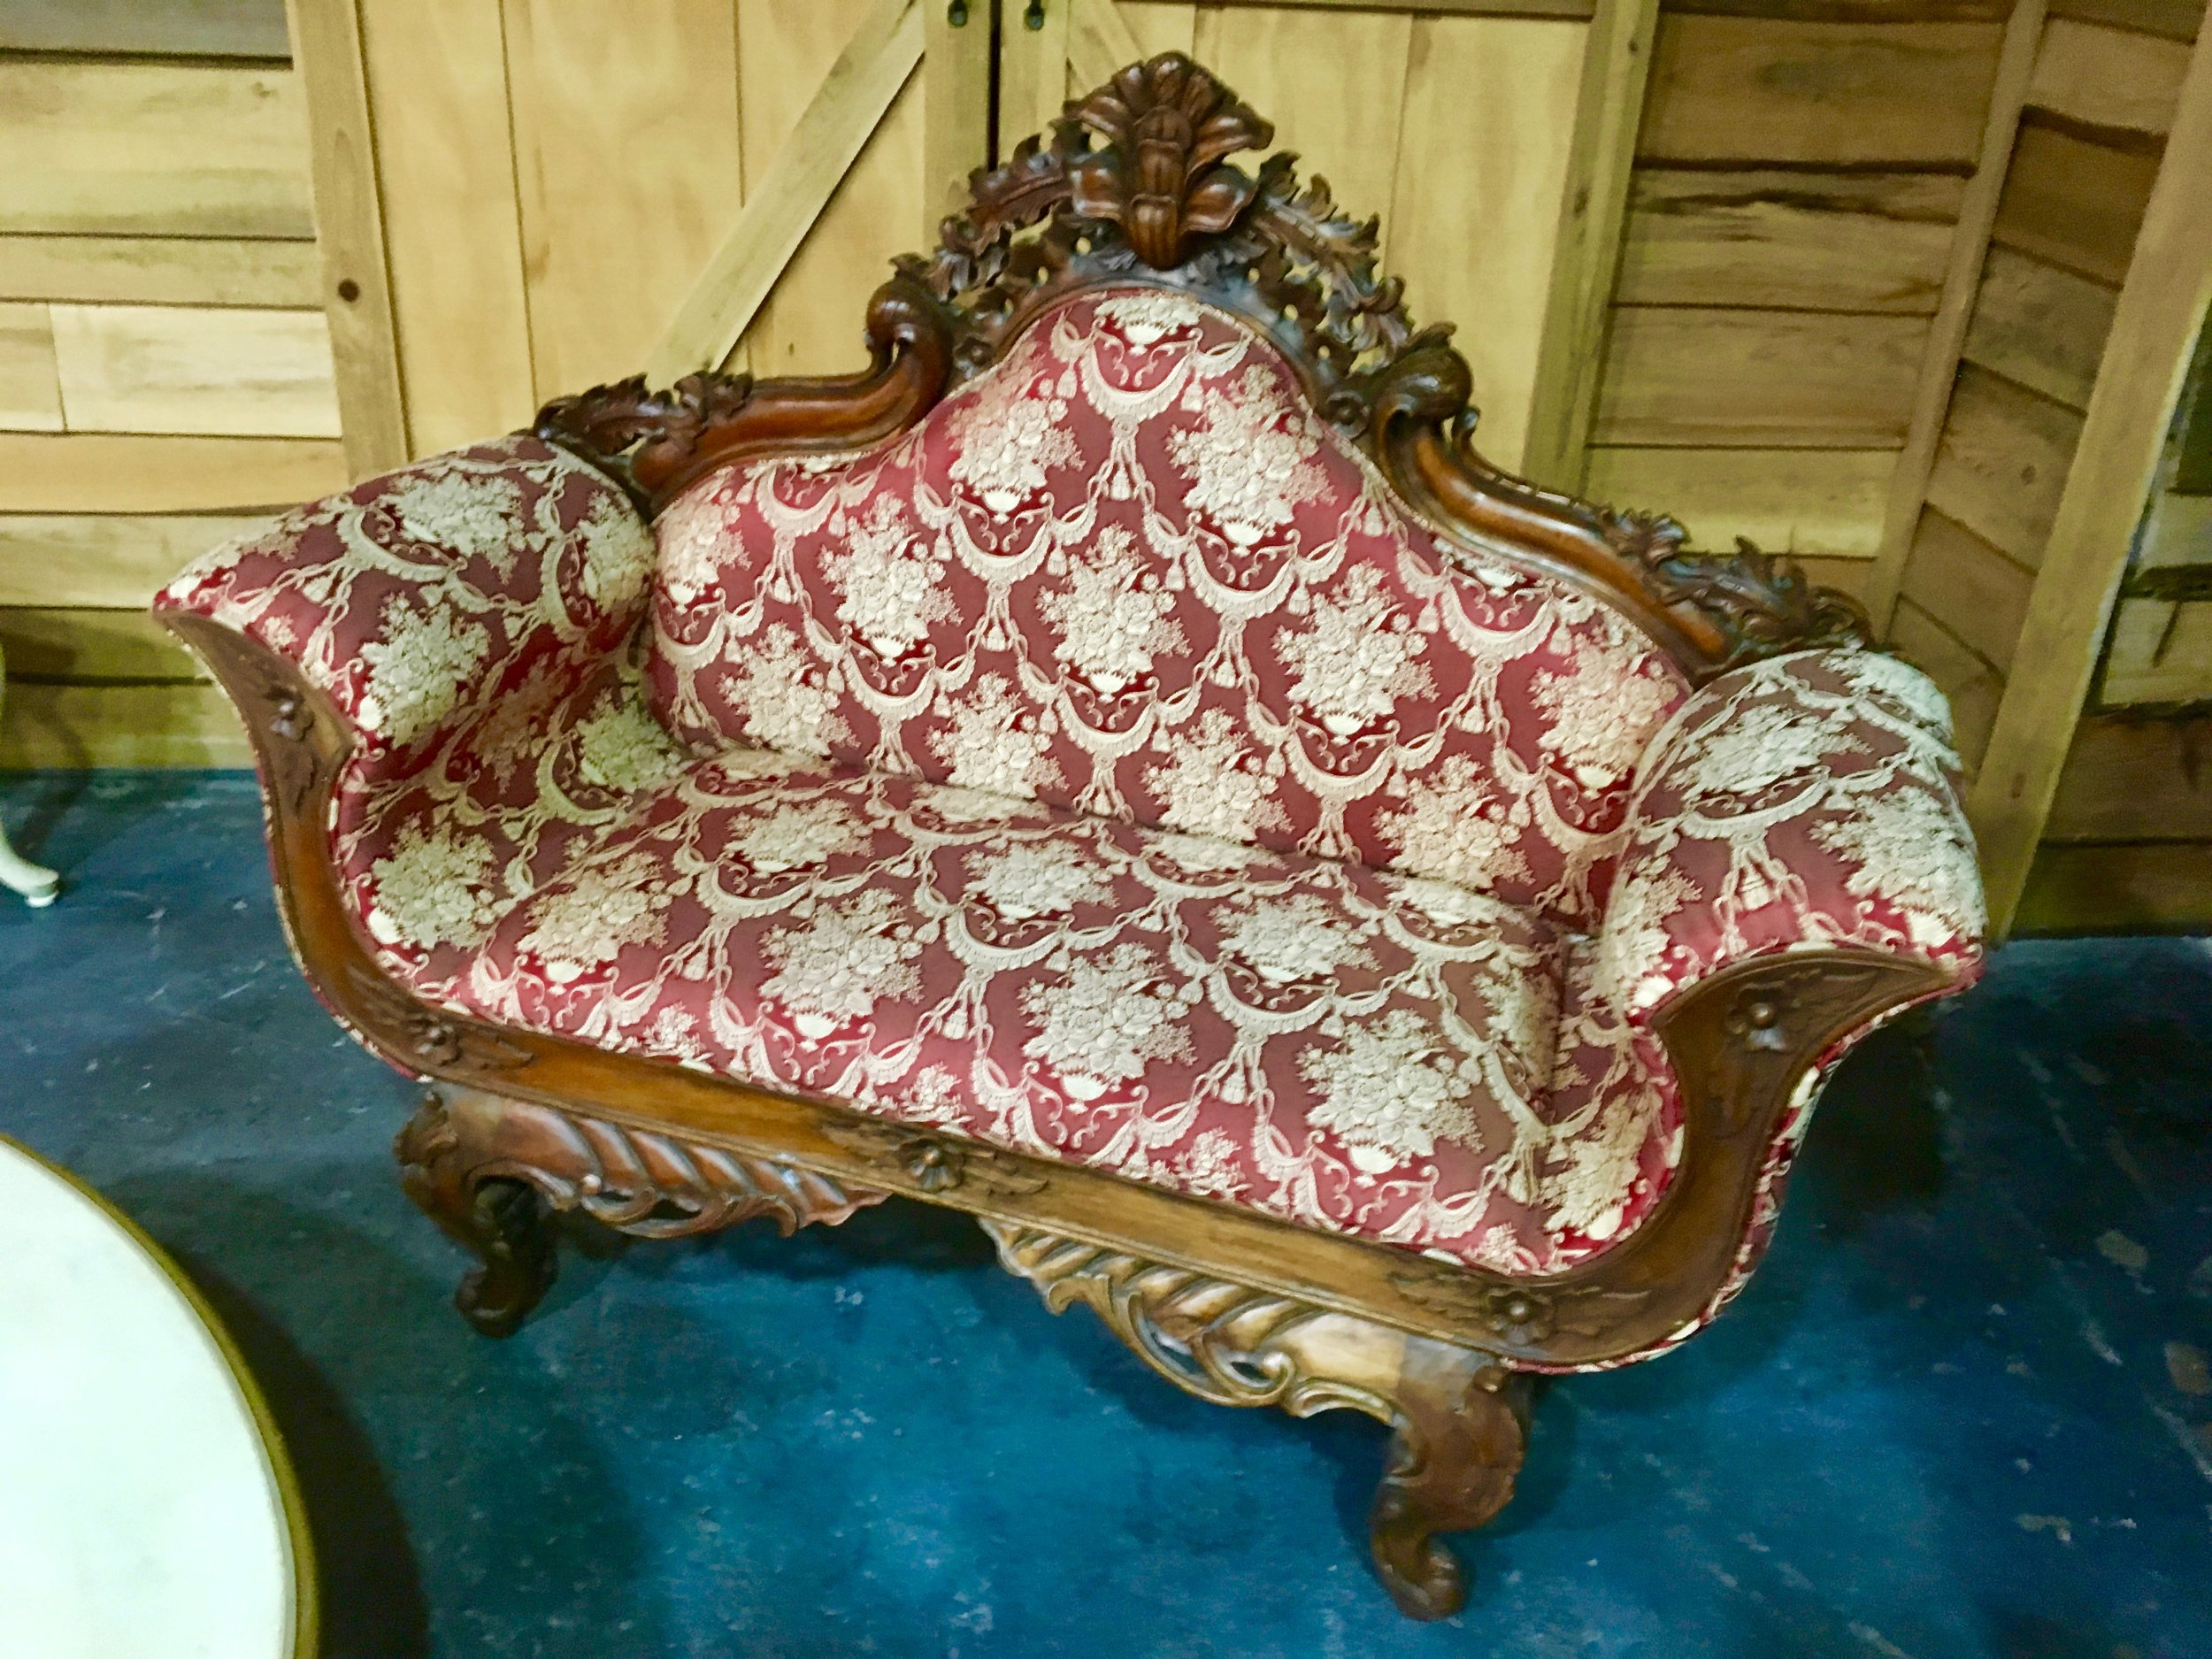 Vintage furniture - 1 of 37 (14).jpg